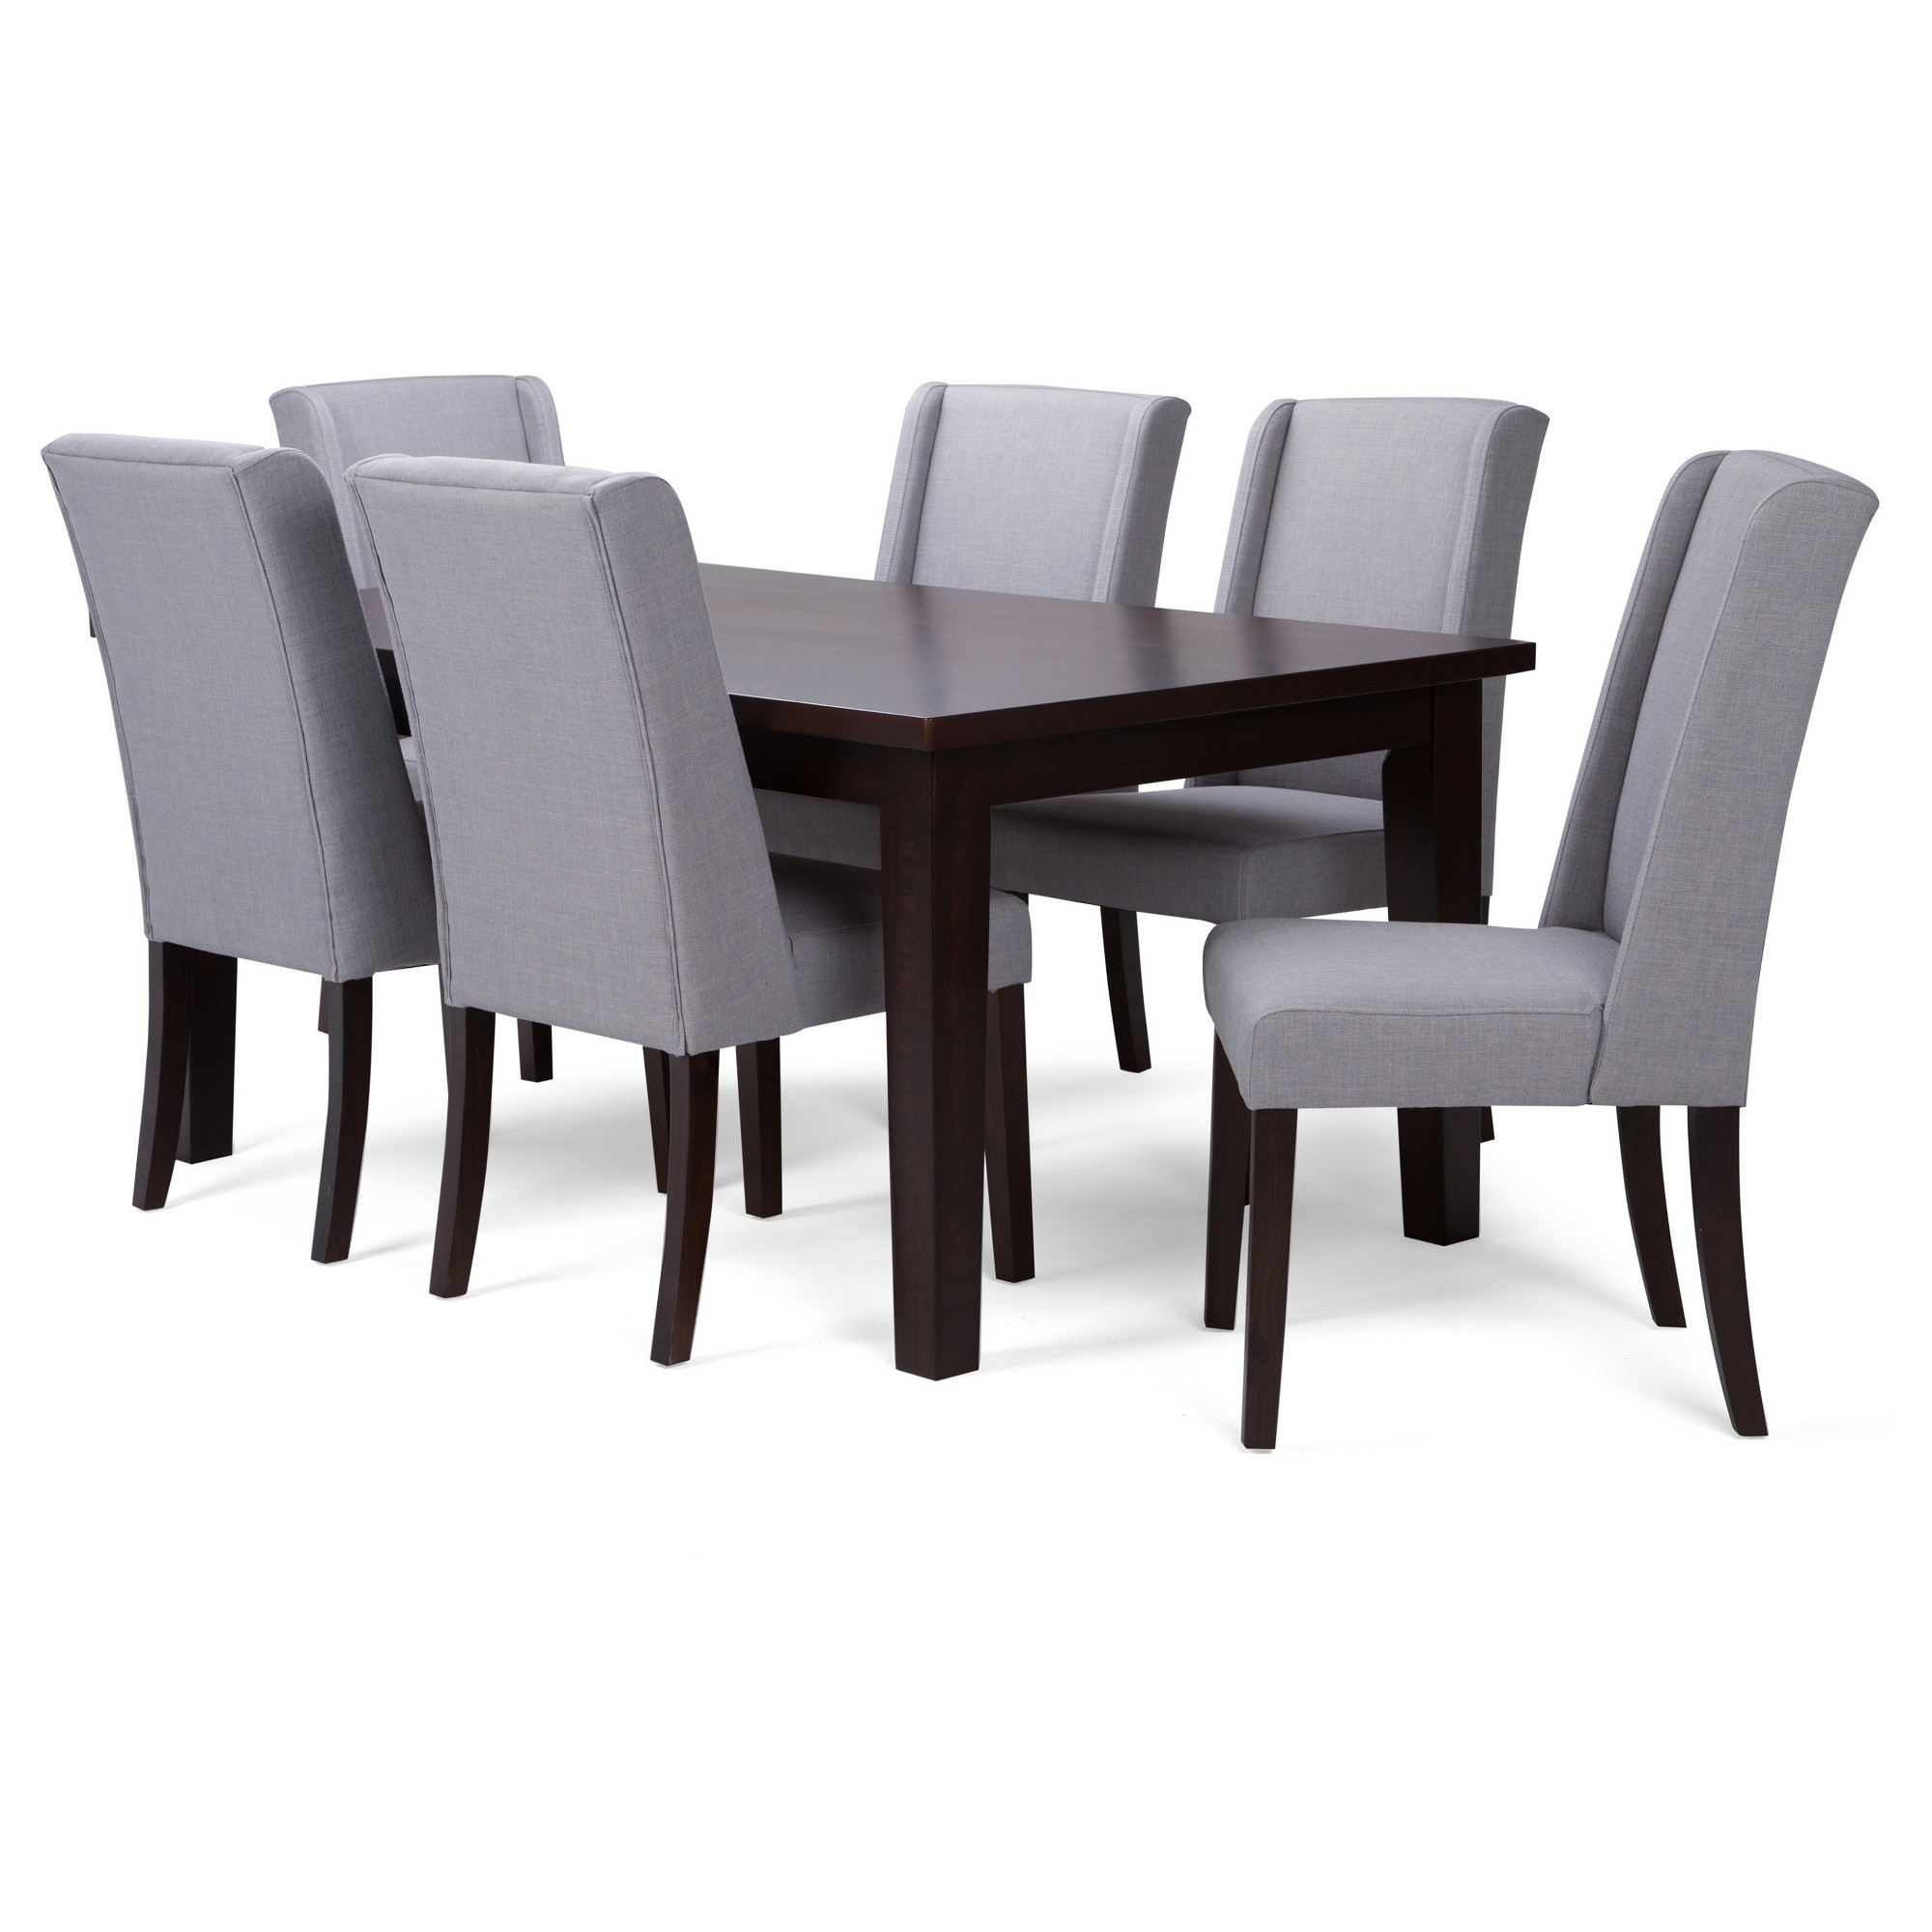 Products Intended For Well Known Walden 7 Piece Extension Dining Sets (View 14 of 25)